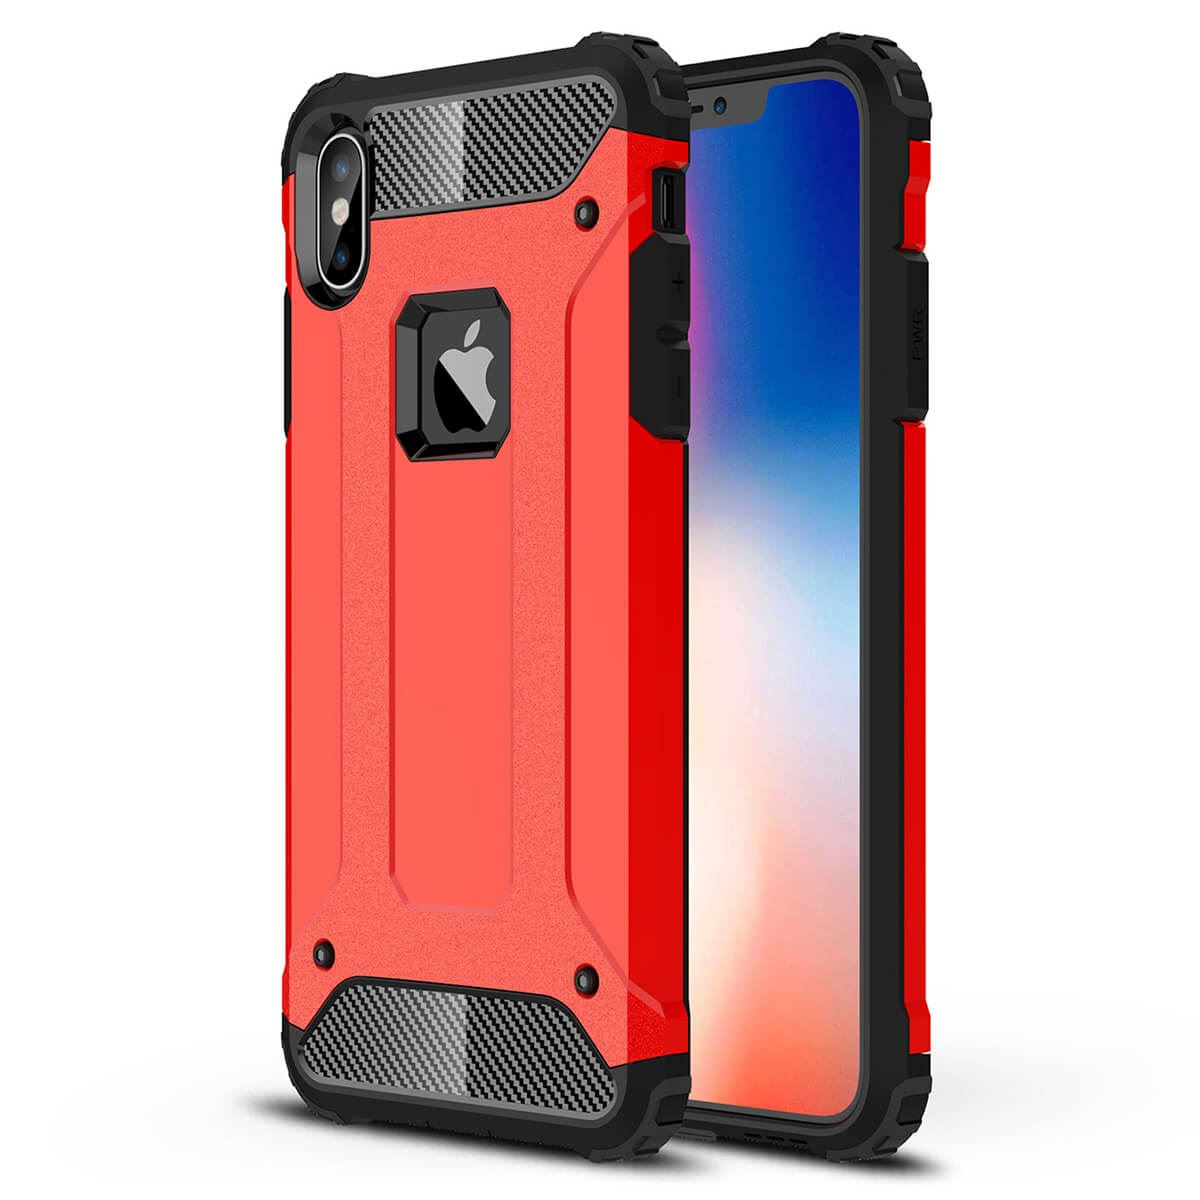 Shockproof-Bumper-Case-For-Apple-iPhone-10-X-8-7-Plus-6s-5s-Hybrid-Armor-Rugged thumbnail 20